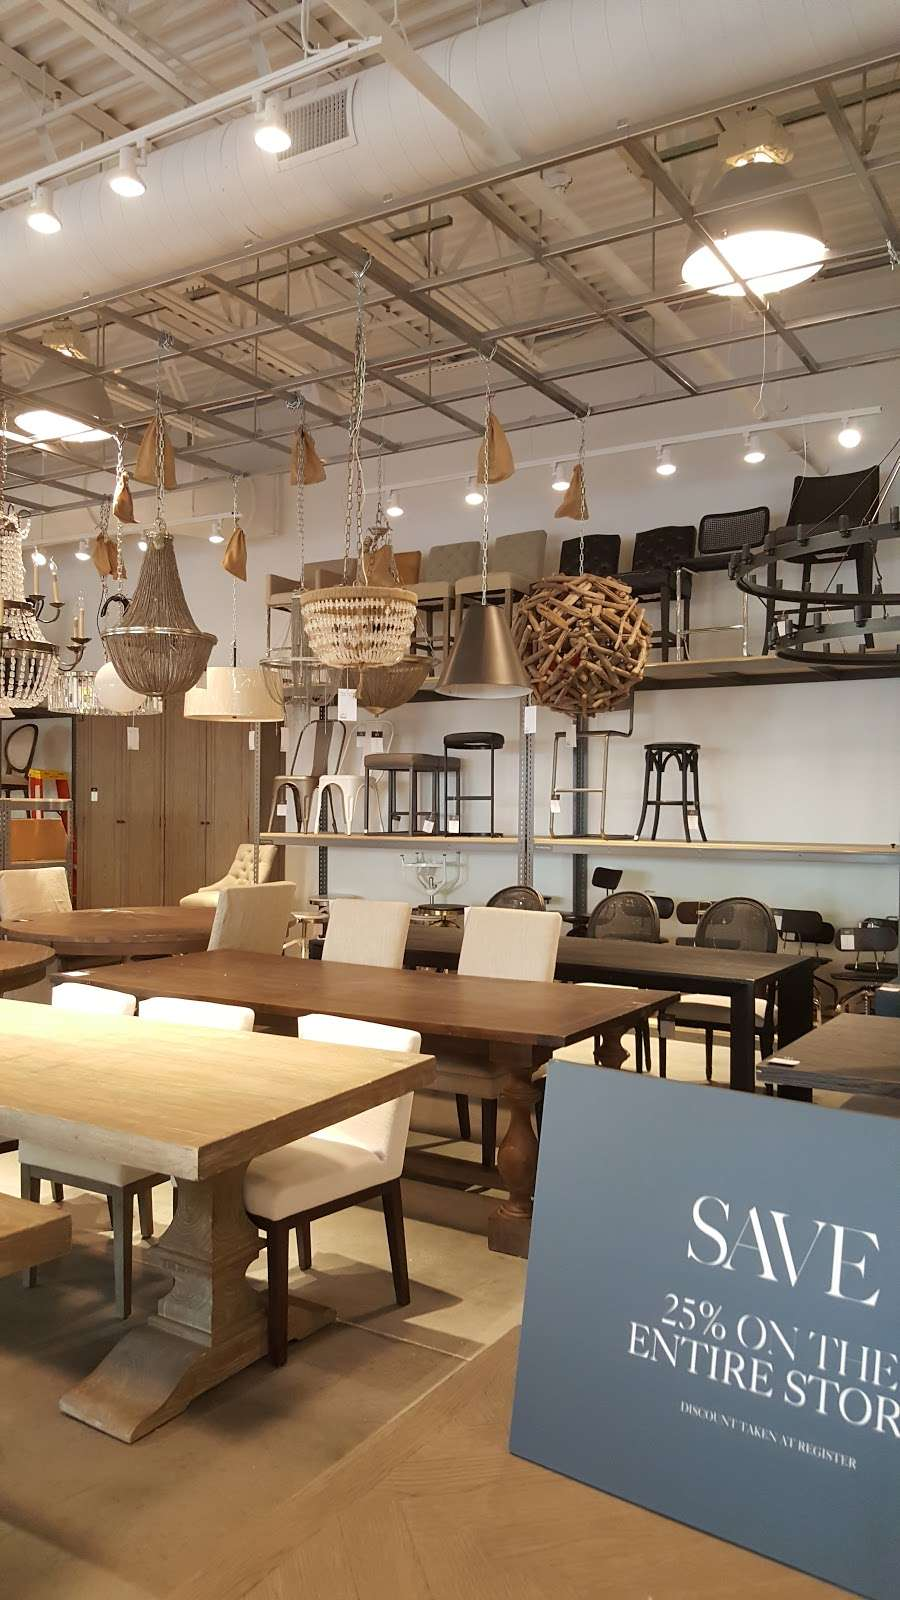 Restoration Hardware Outlet - furniture store  | Photo 6 of 10 | Address: 18 West Lightcap Rd Suite 501, Sanatoga, PA 19464, USA | Phone: (610) 970-1518